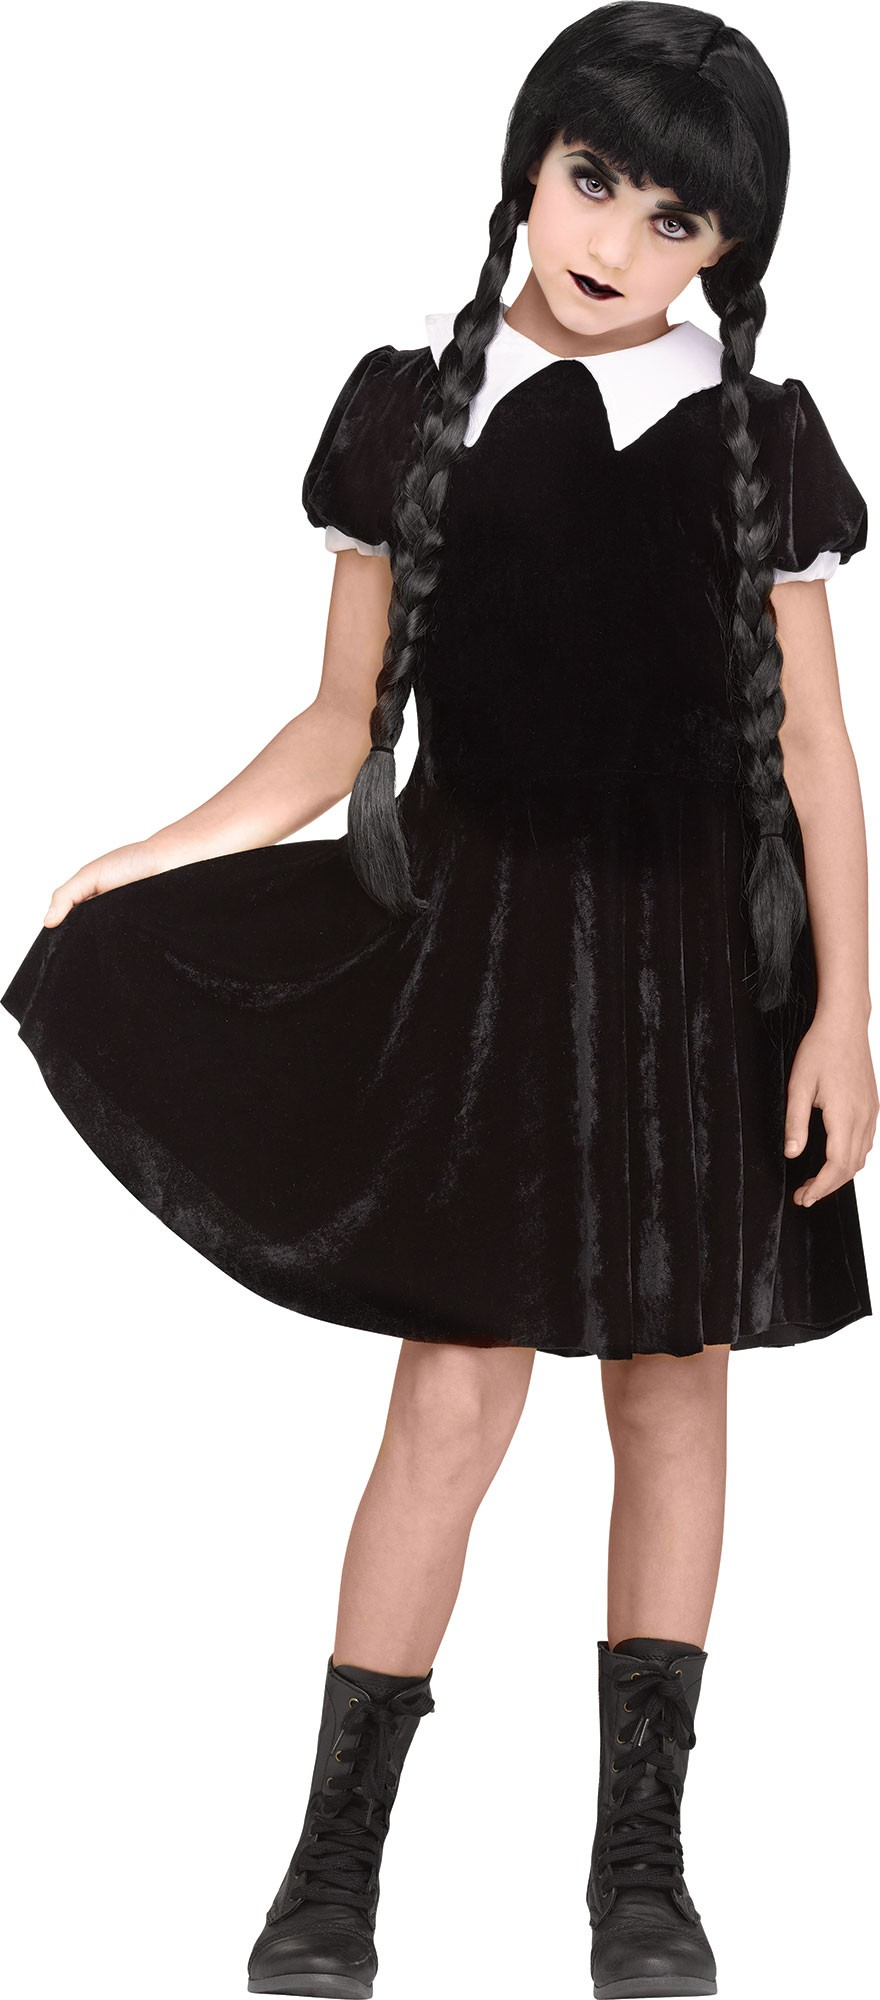 Details about Gothic Girl Child Size Wednesday Addams The Addams Family  Halloween Costume